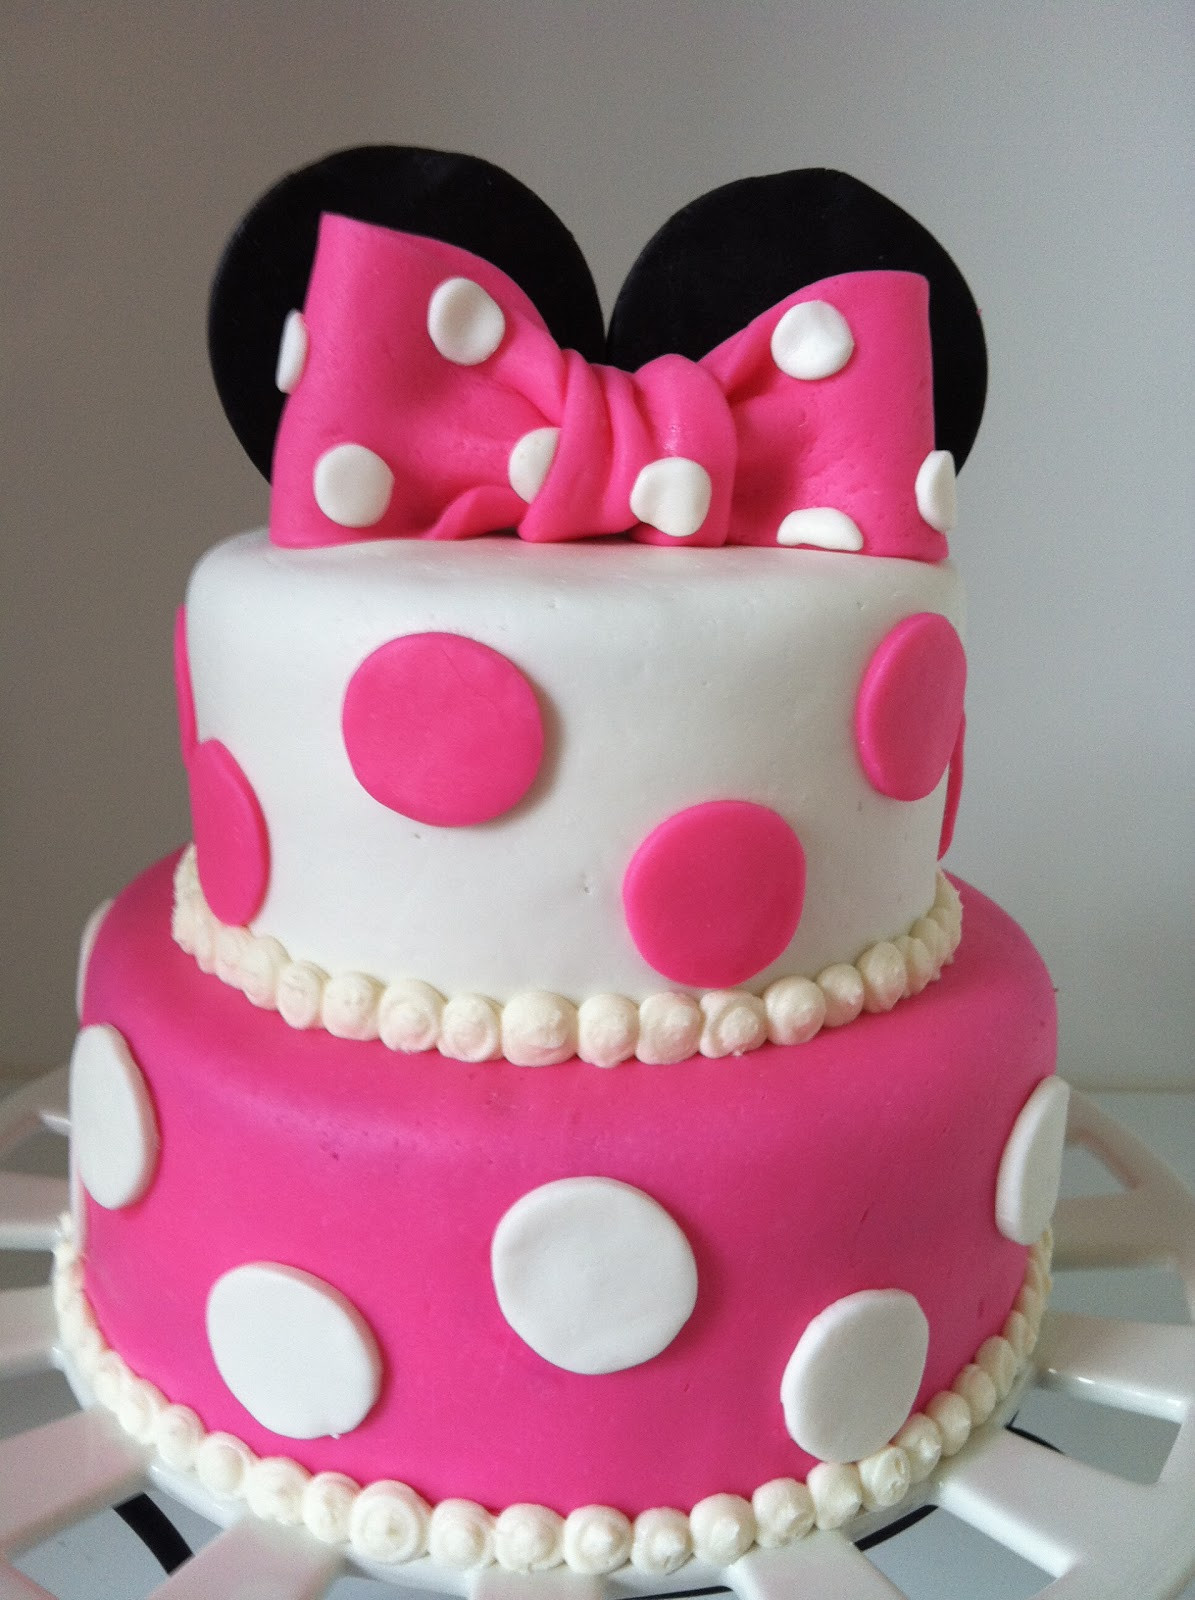 Best ideas about Birthday Cake For Girls . Save or Pin The Weekly Sweet Experiment Rachel s 2nd Birthday Cake Now.